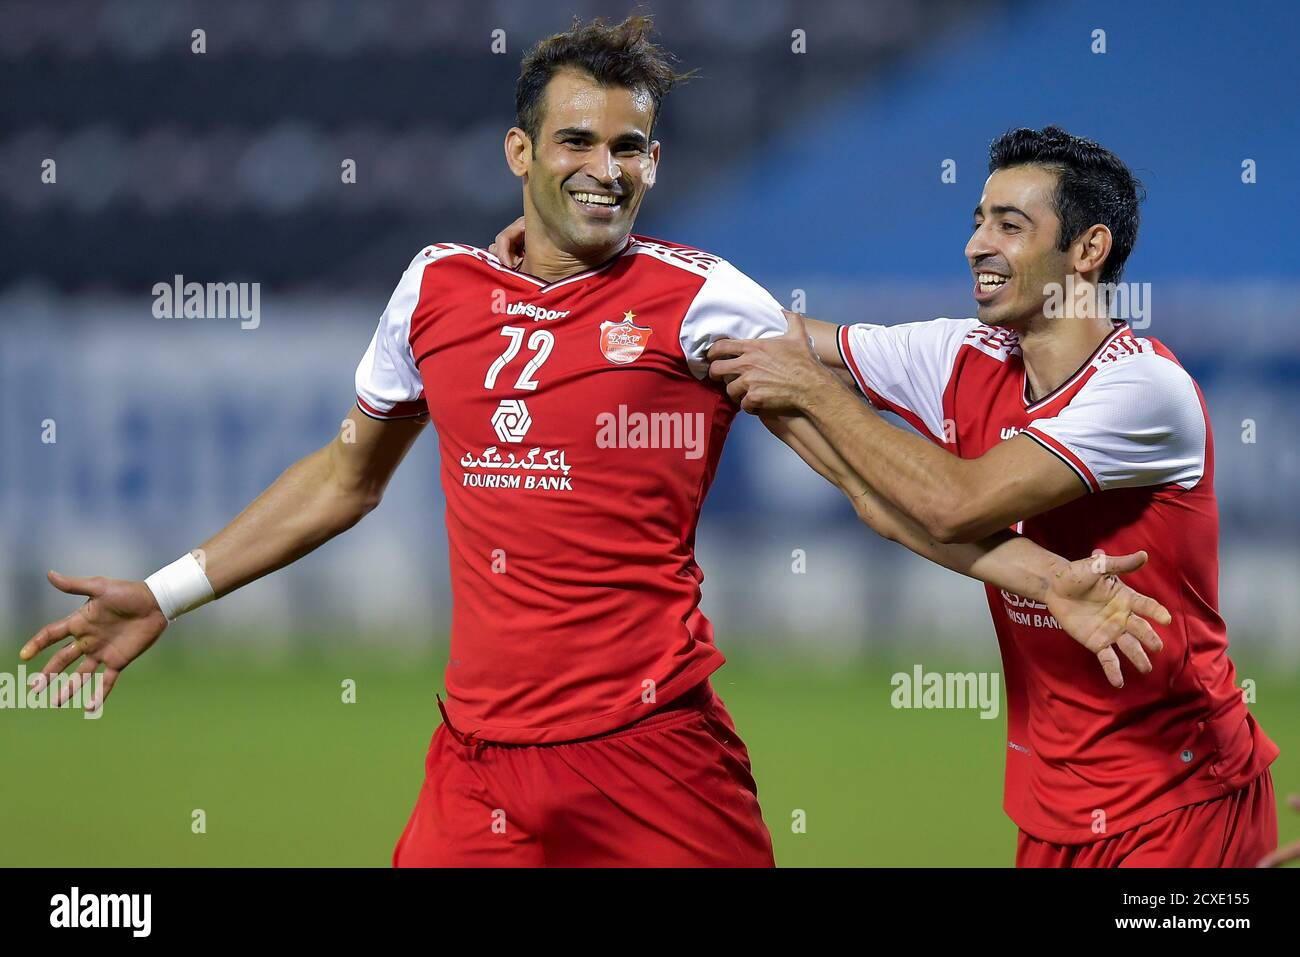 Doha Qatar 30th Sep 2020 Iss Ale Kasir L Of Persepolis Fc Celebrates After Scoring During